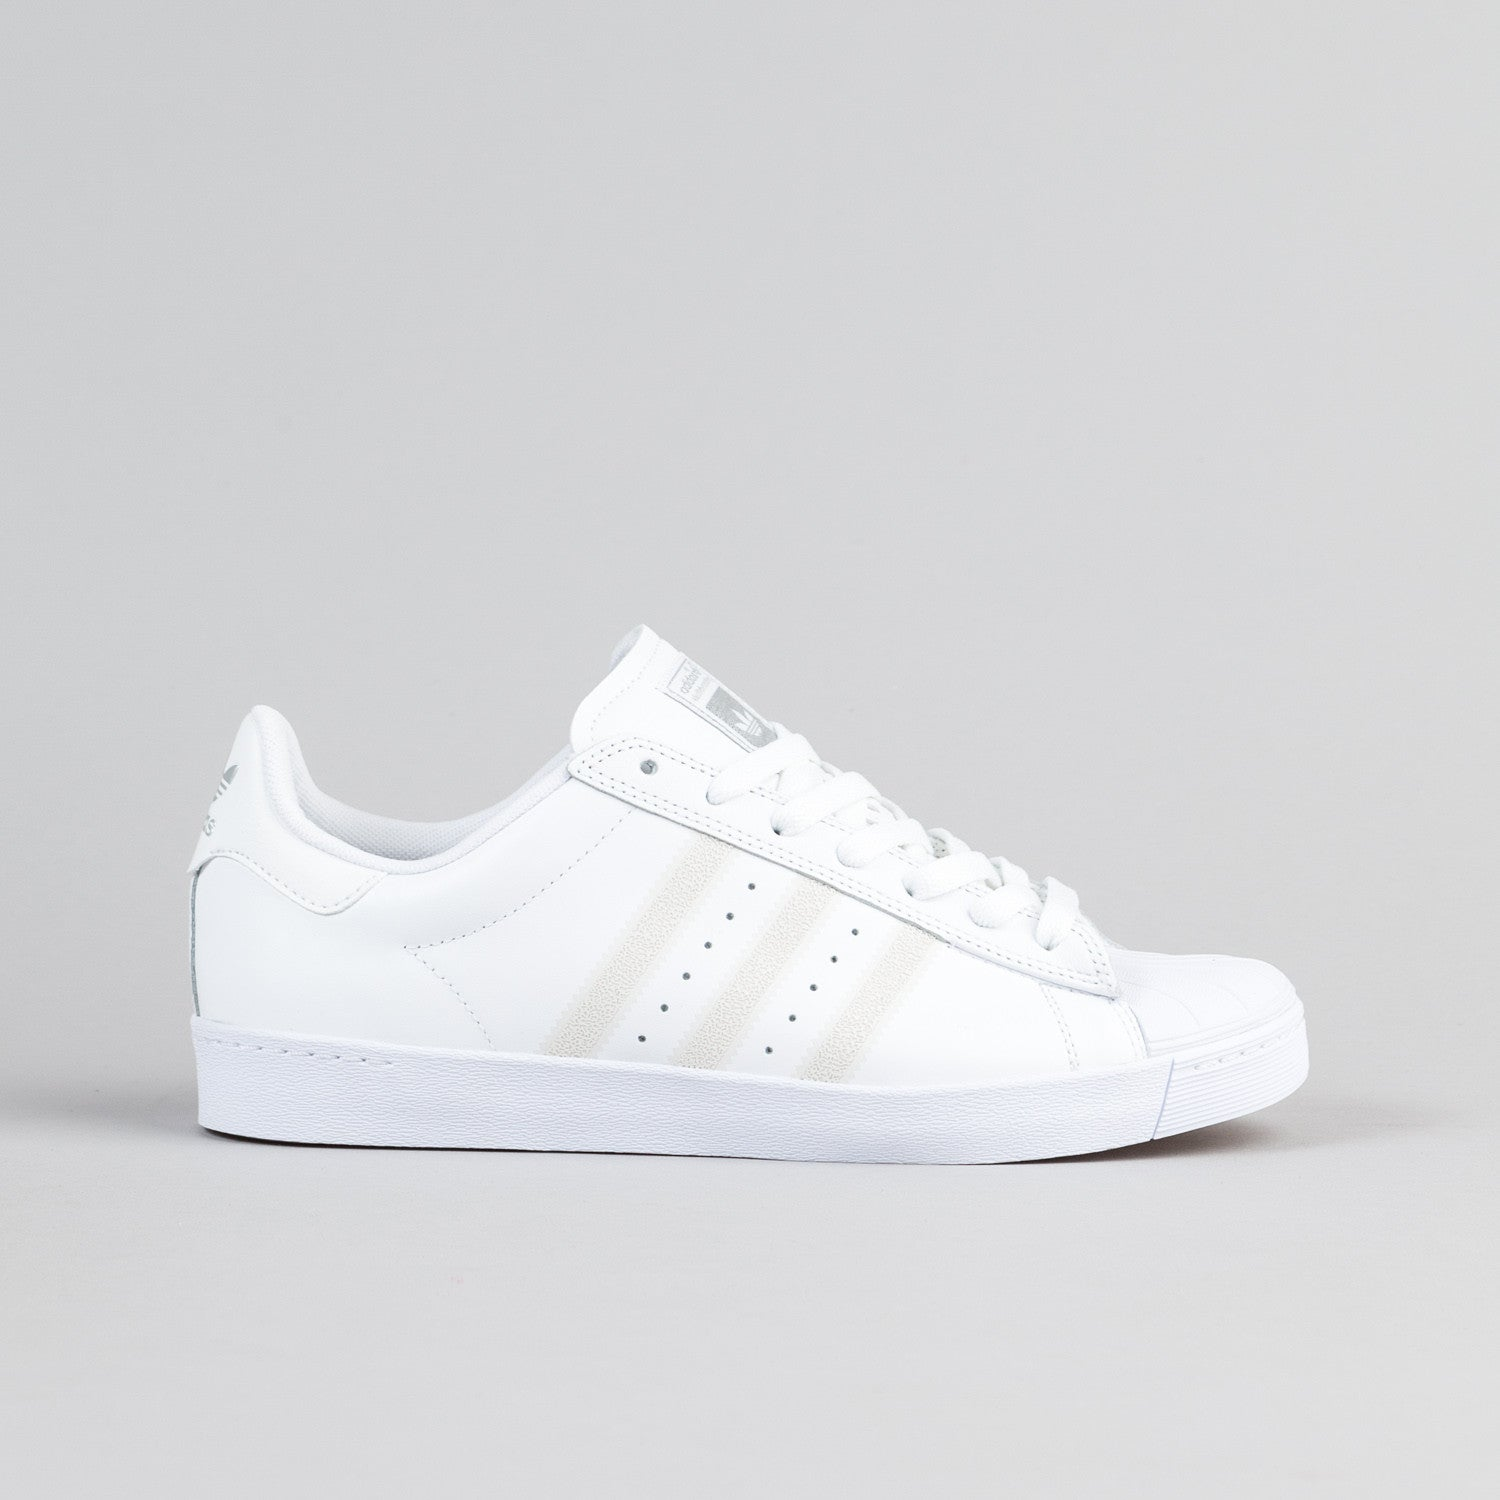 Adidas Superstar Vulc Review